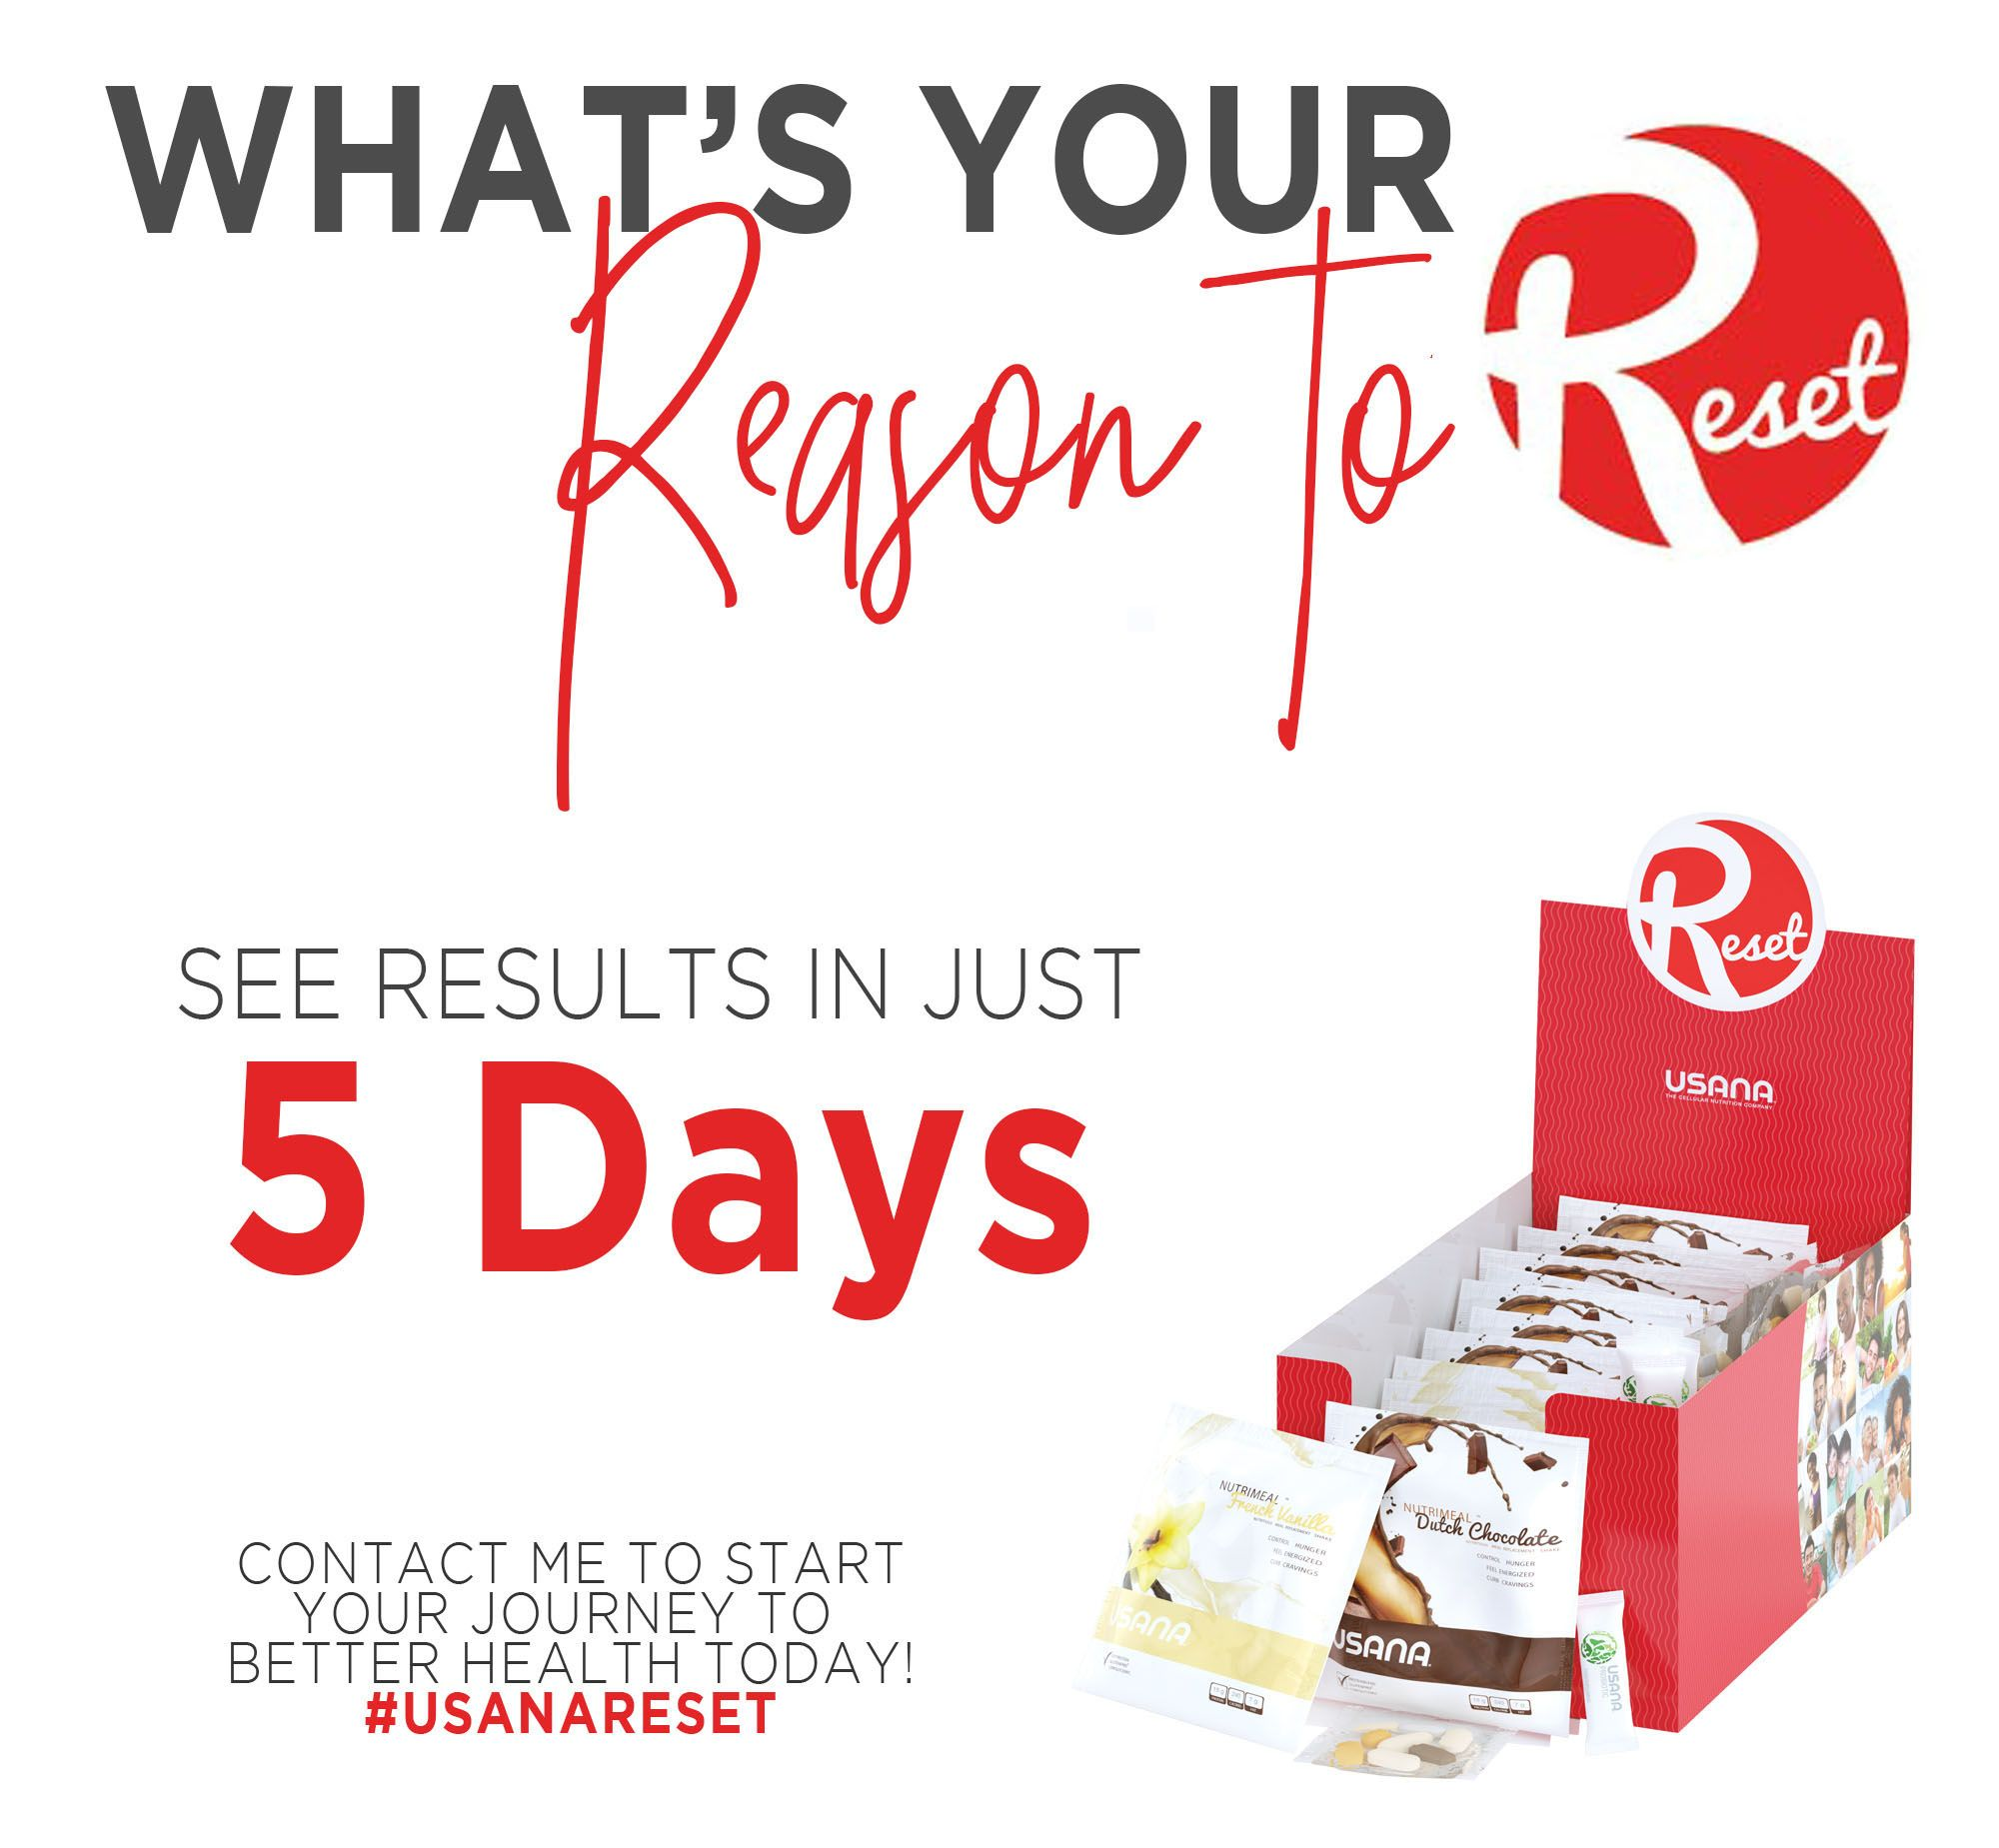 What Is Your Reason To Reset See Results In Just 5 Days With Usana Reset Kit